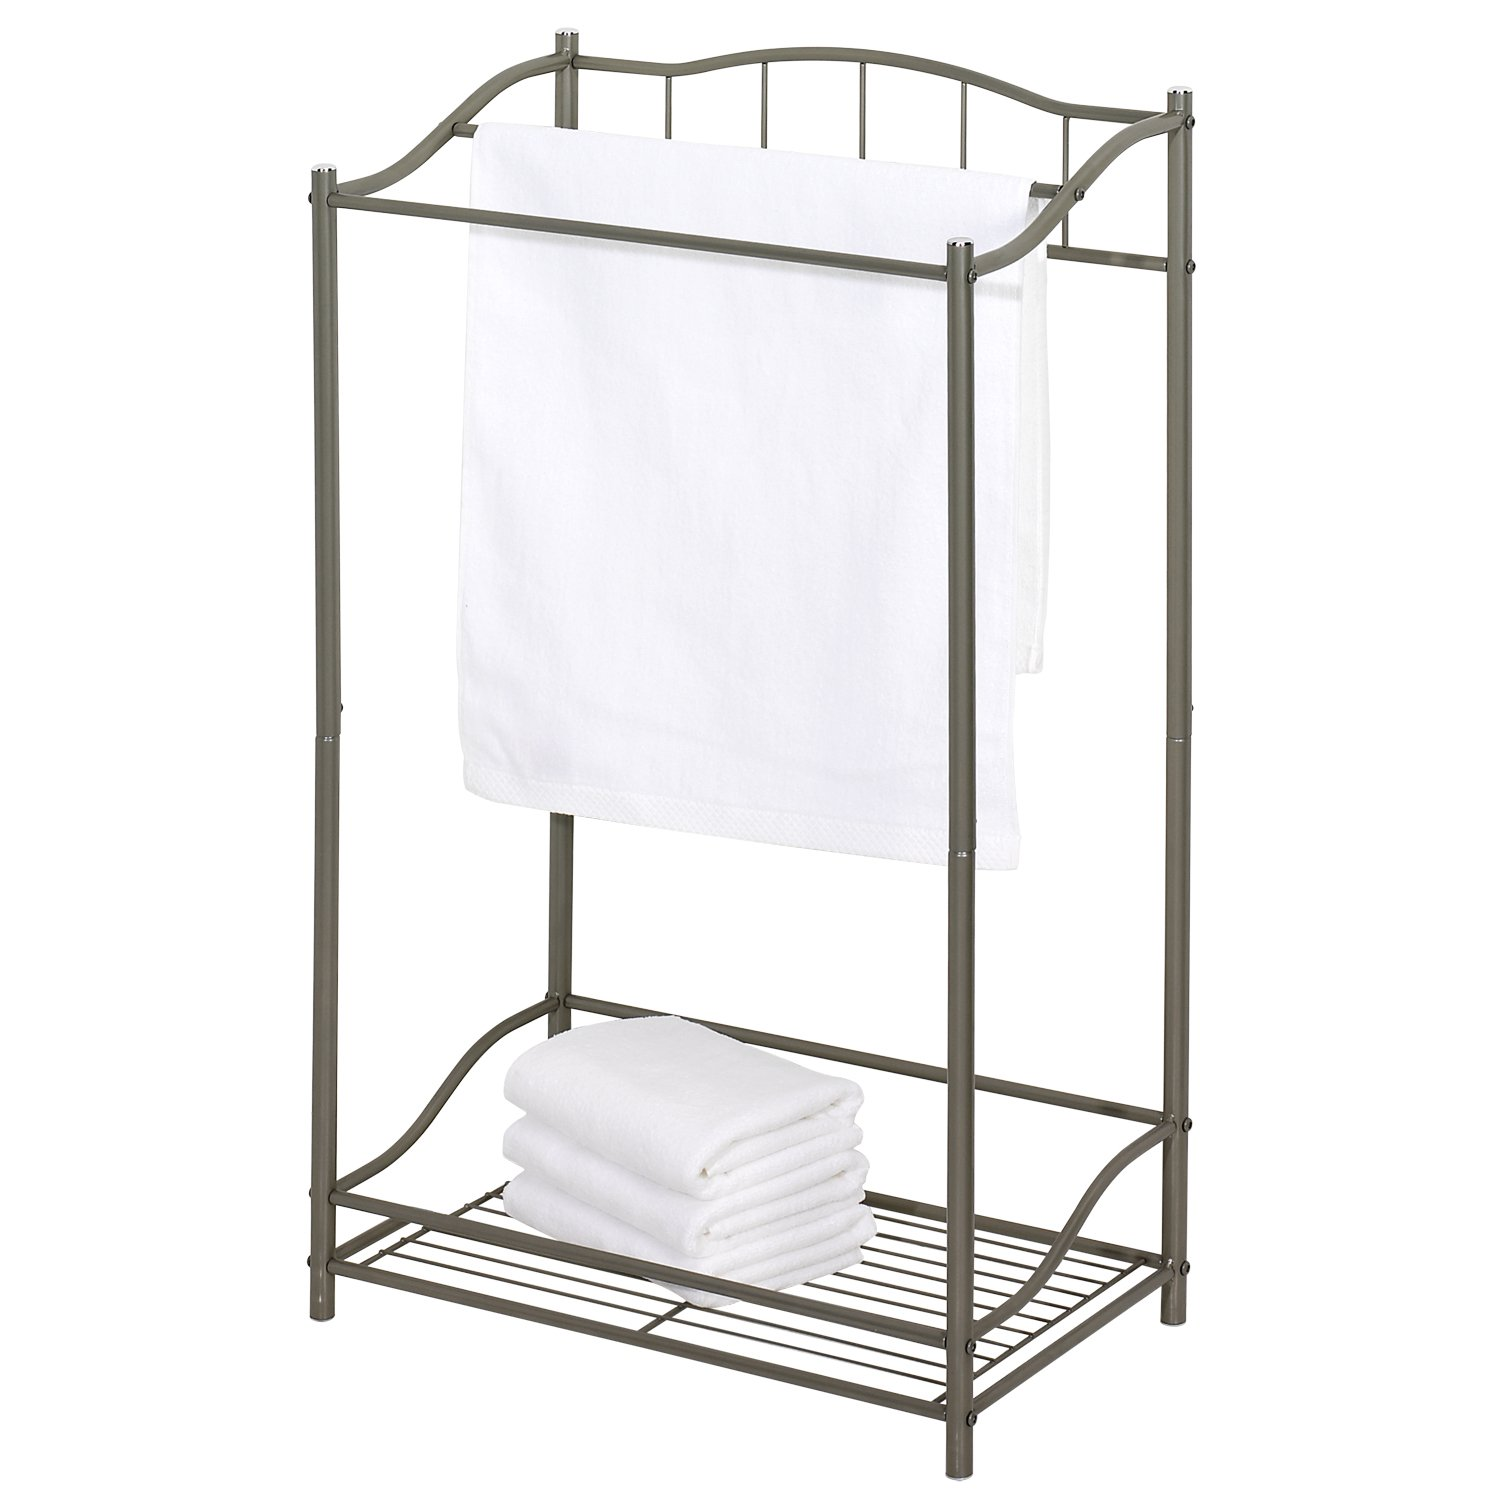 holder hand walmart racks bathrooms free for interior shelves philippines towel ideas ealing stand standing remarkable wall storages small india bathroom rack magnificent